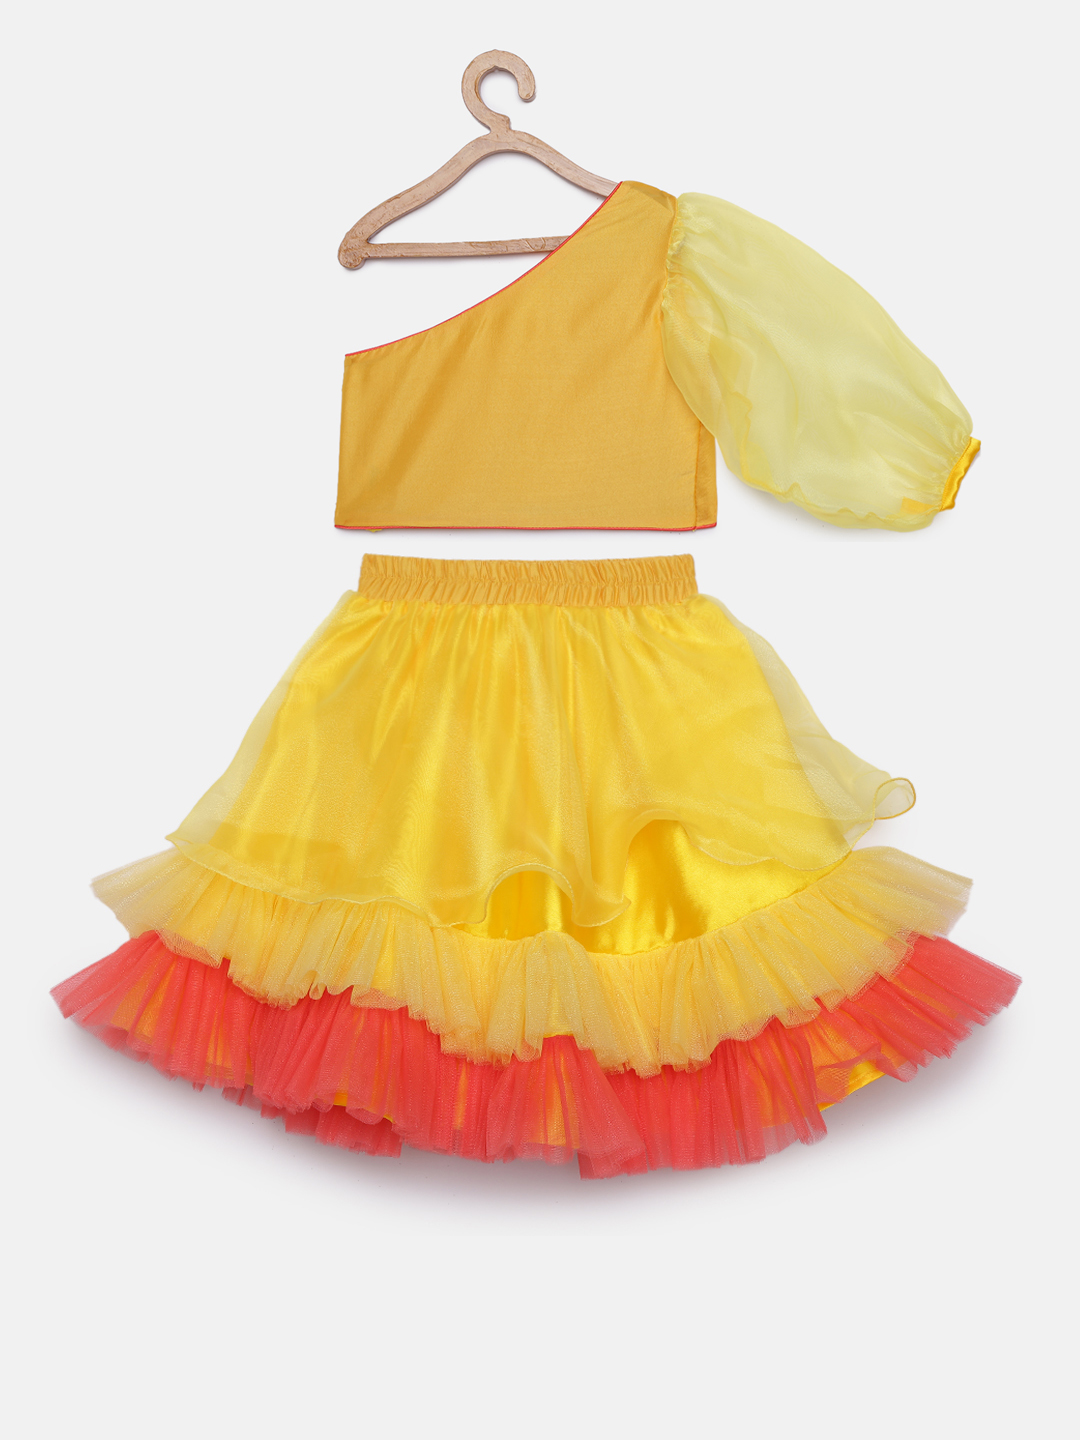 2 7 Yellow One Sleeves Sequins Choli with tiered lehenga and belt bag